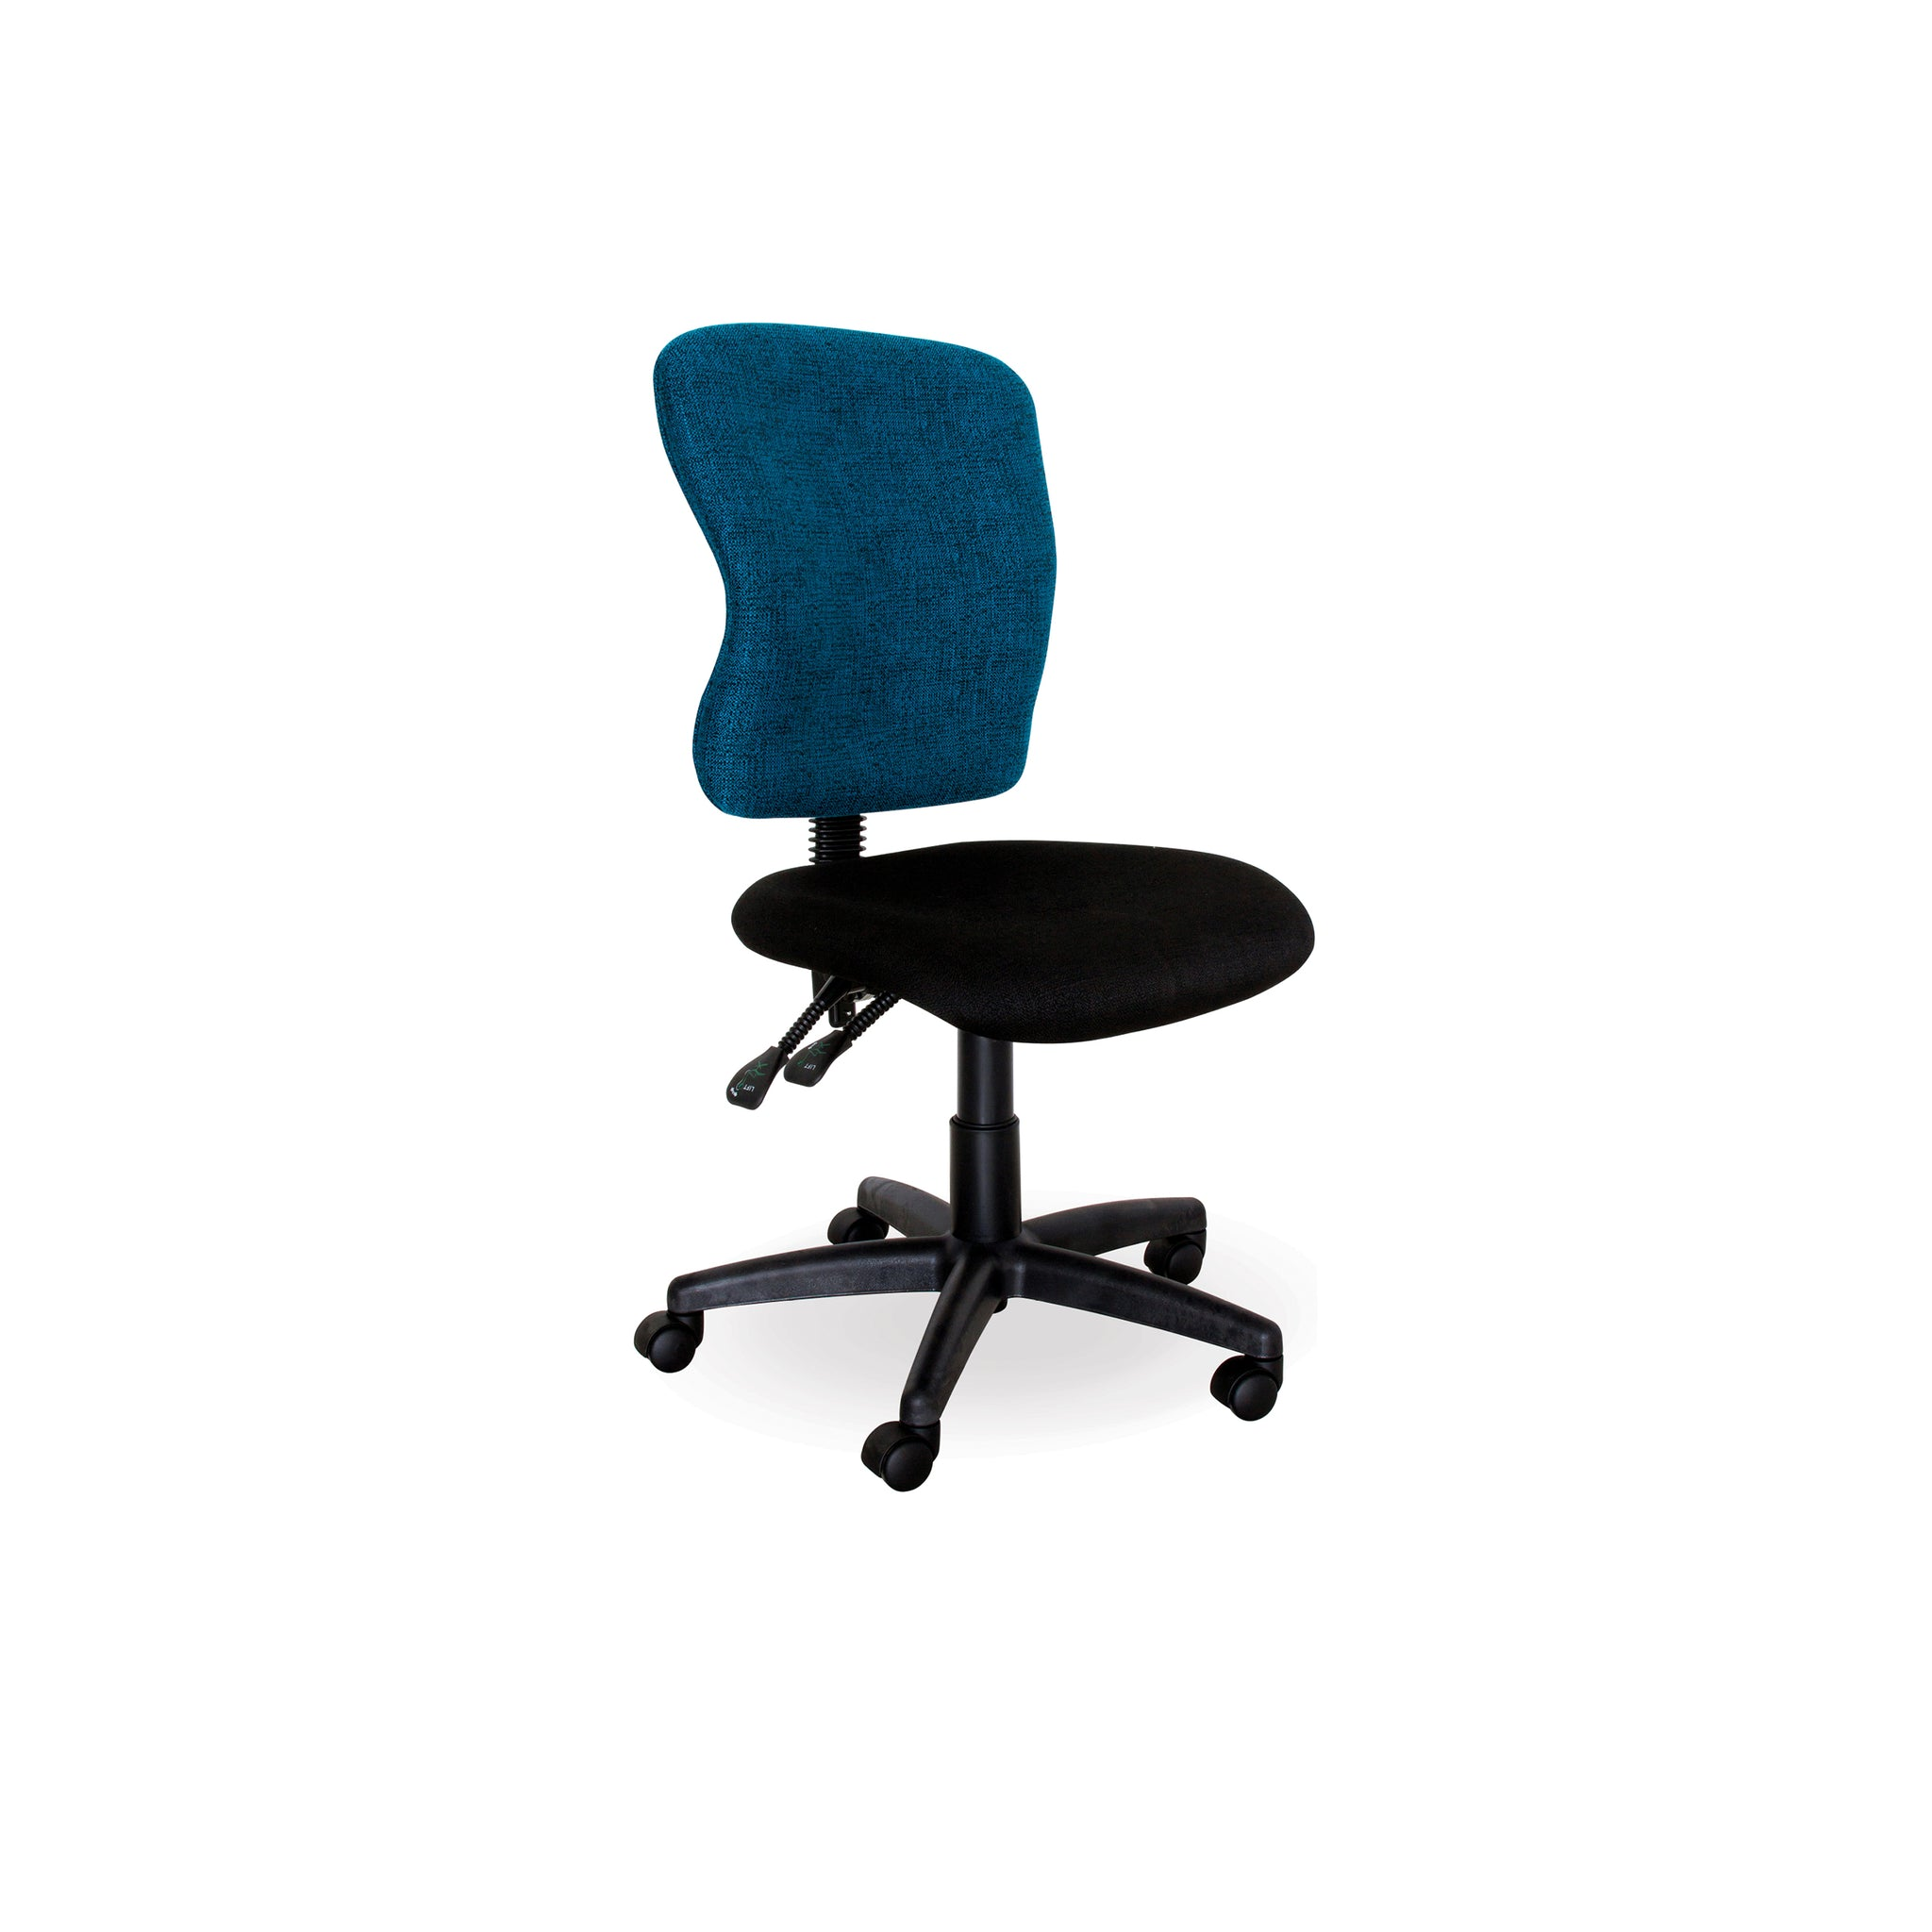 Hedcor Lucea office chair